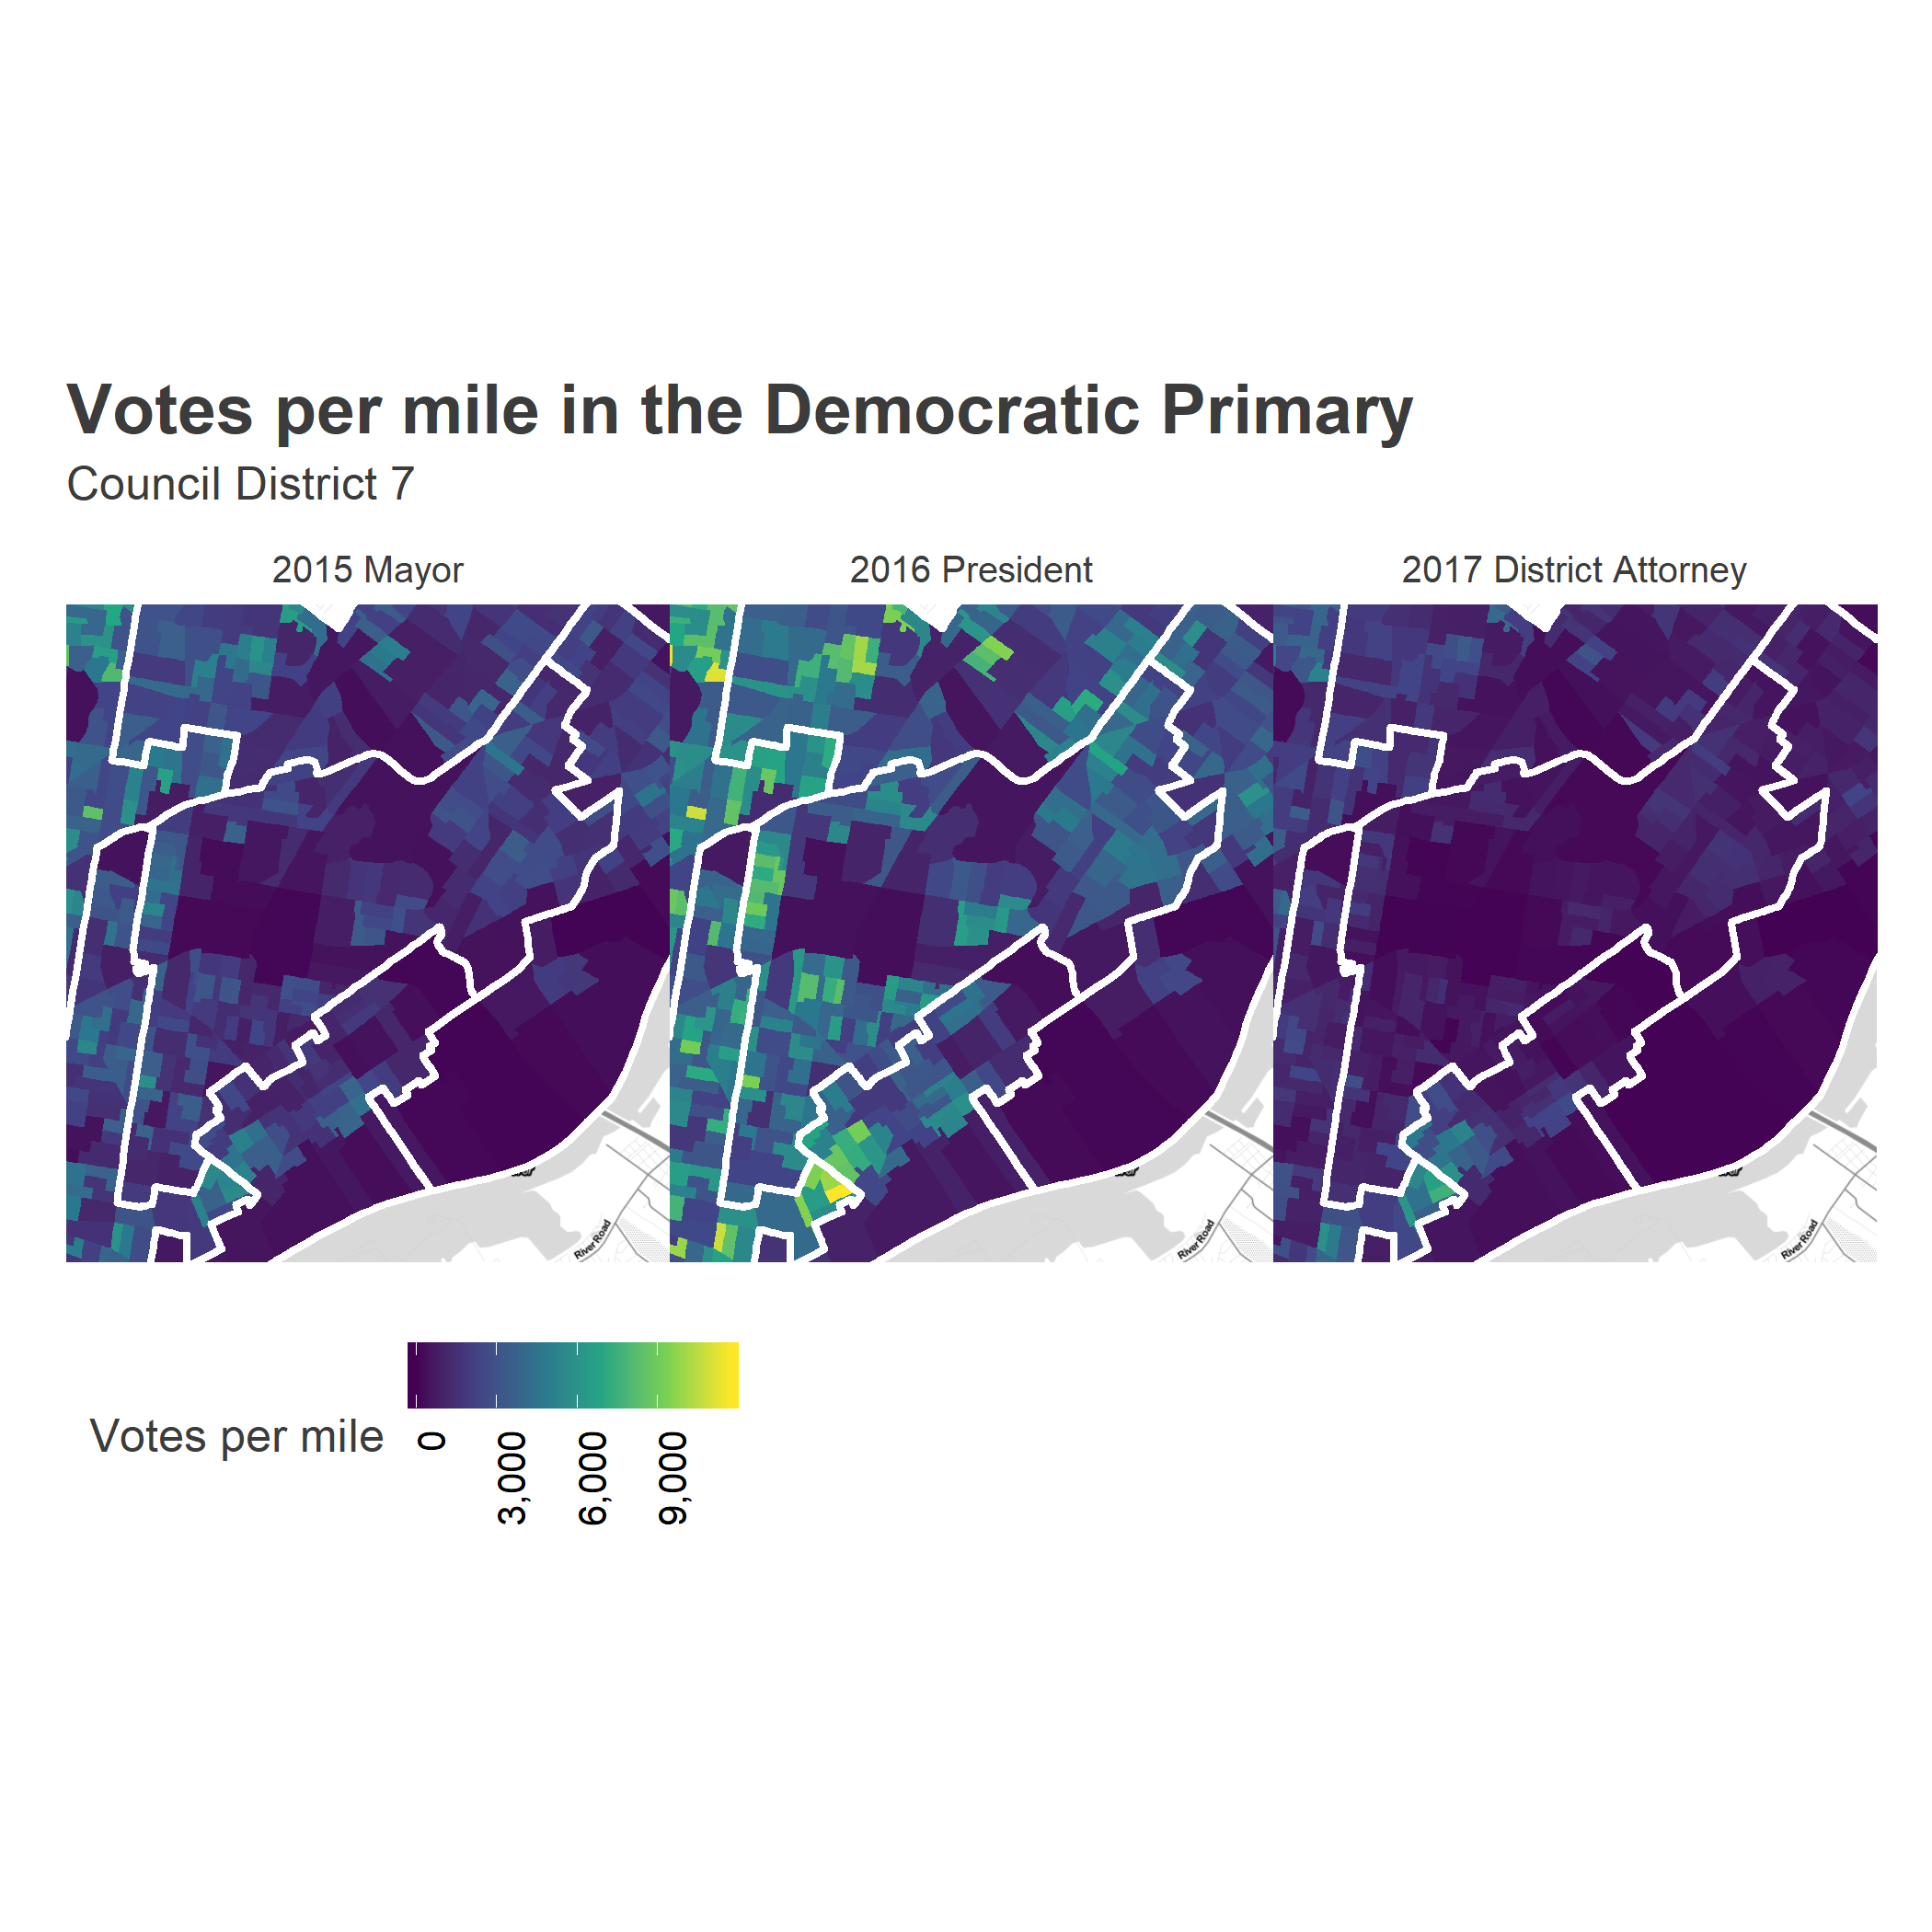 plot of chunk turnout_map